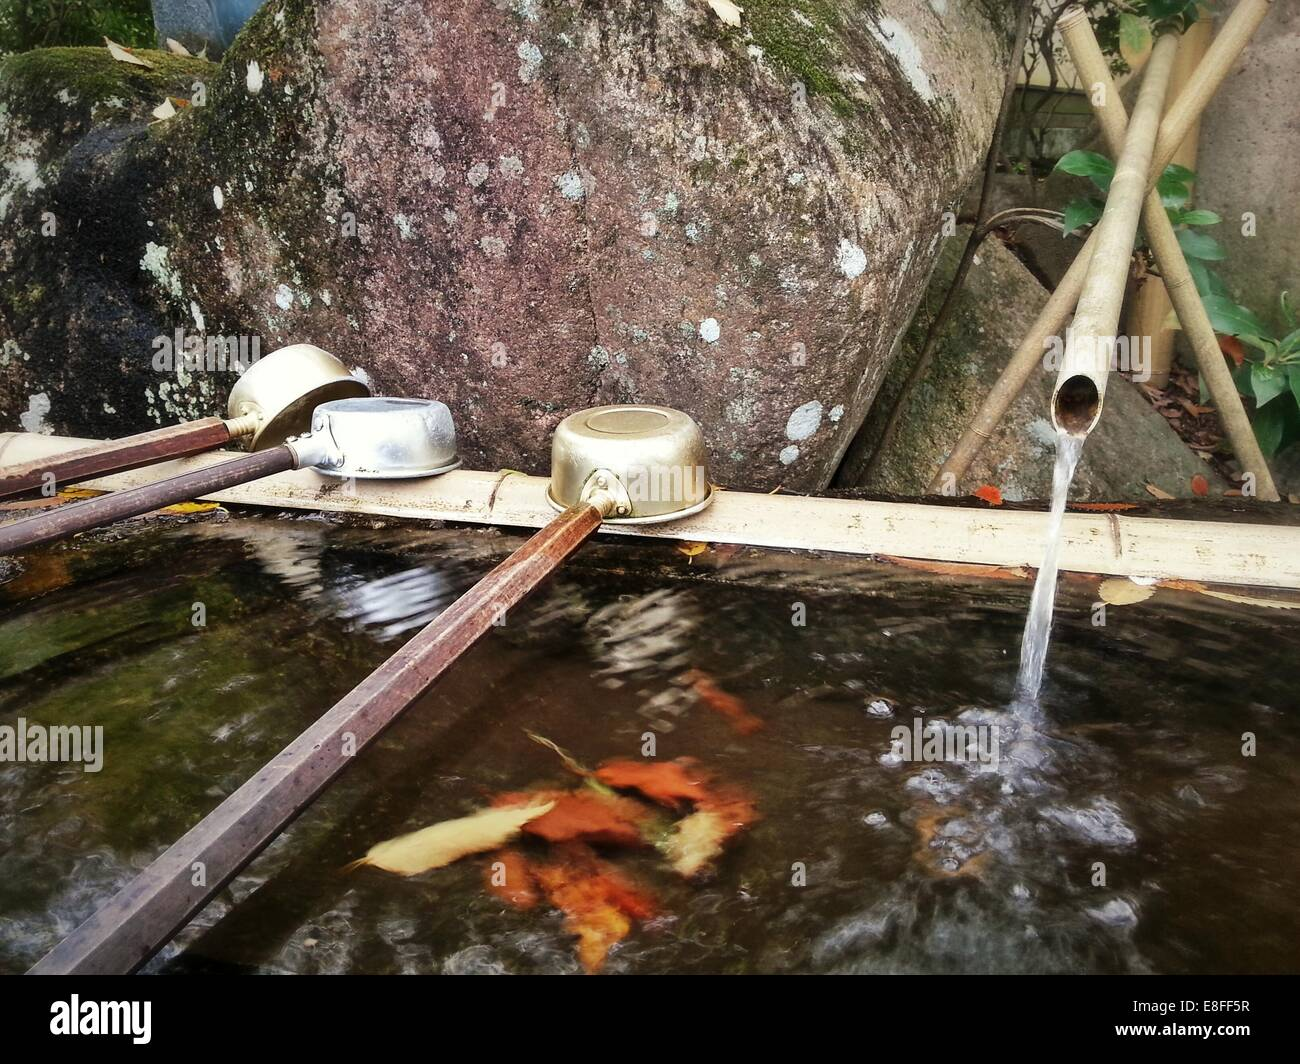 Water well at Japanese shrine - Stock Image